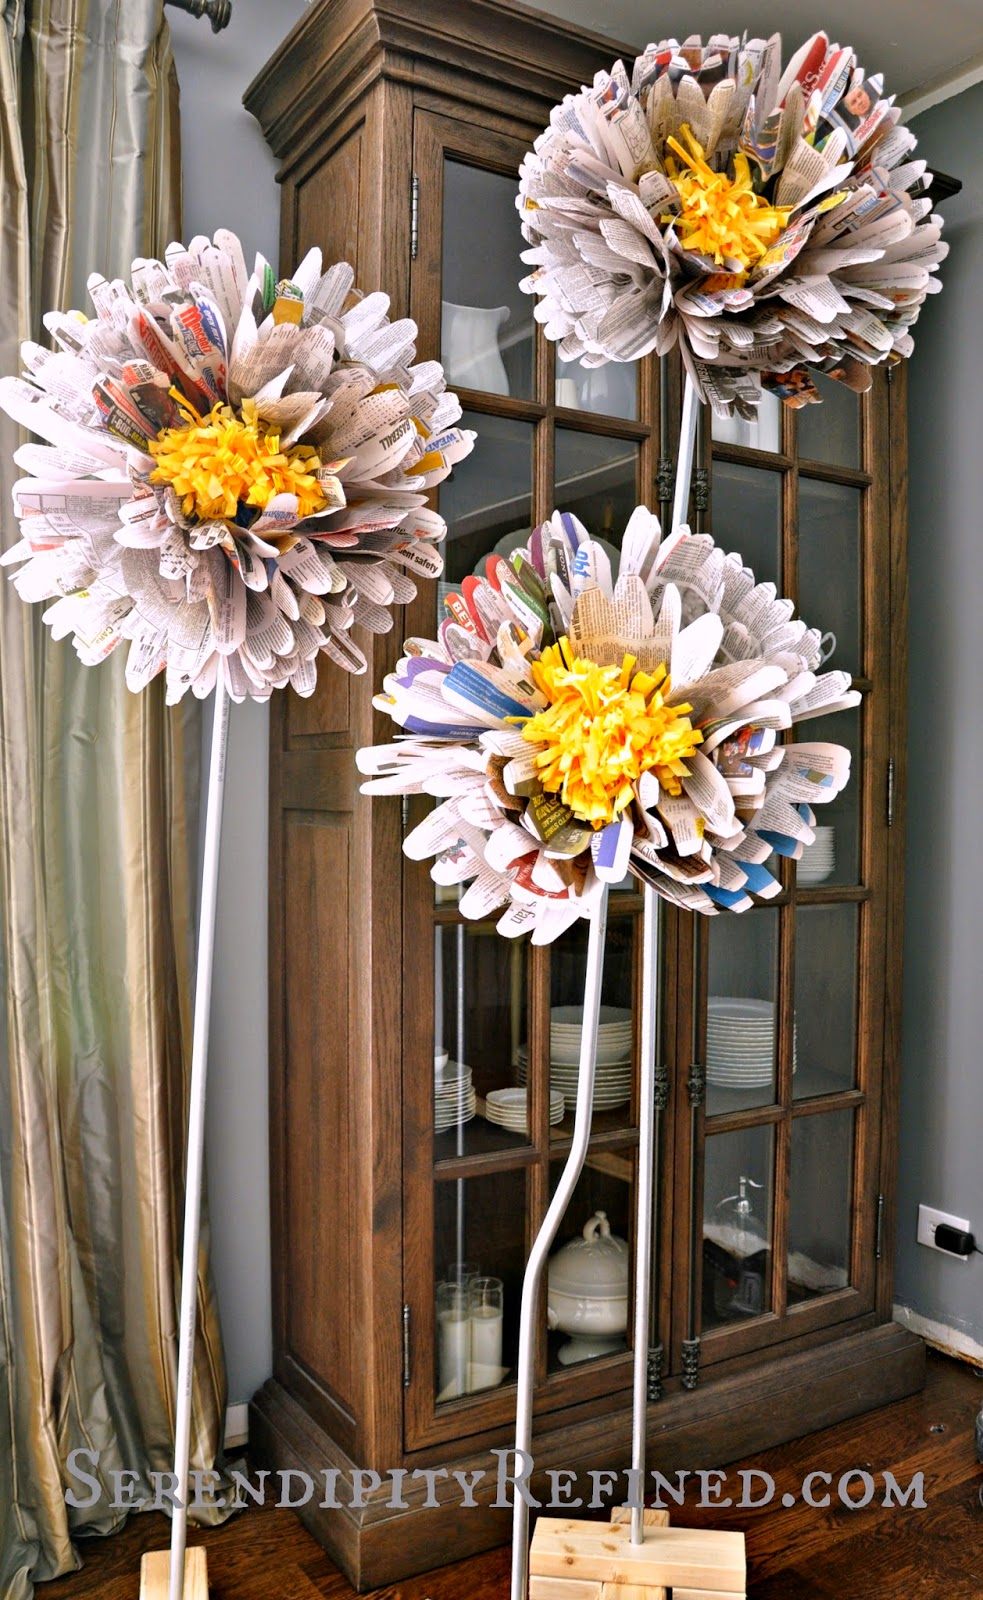 Paper flowers lyrics image collections flower decoration ideas evanescence paper flowers lyrics images flower decoration ideas evanescence paper flowers lyrics gallery flower decoration ideas mightylinksfo